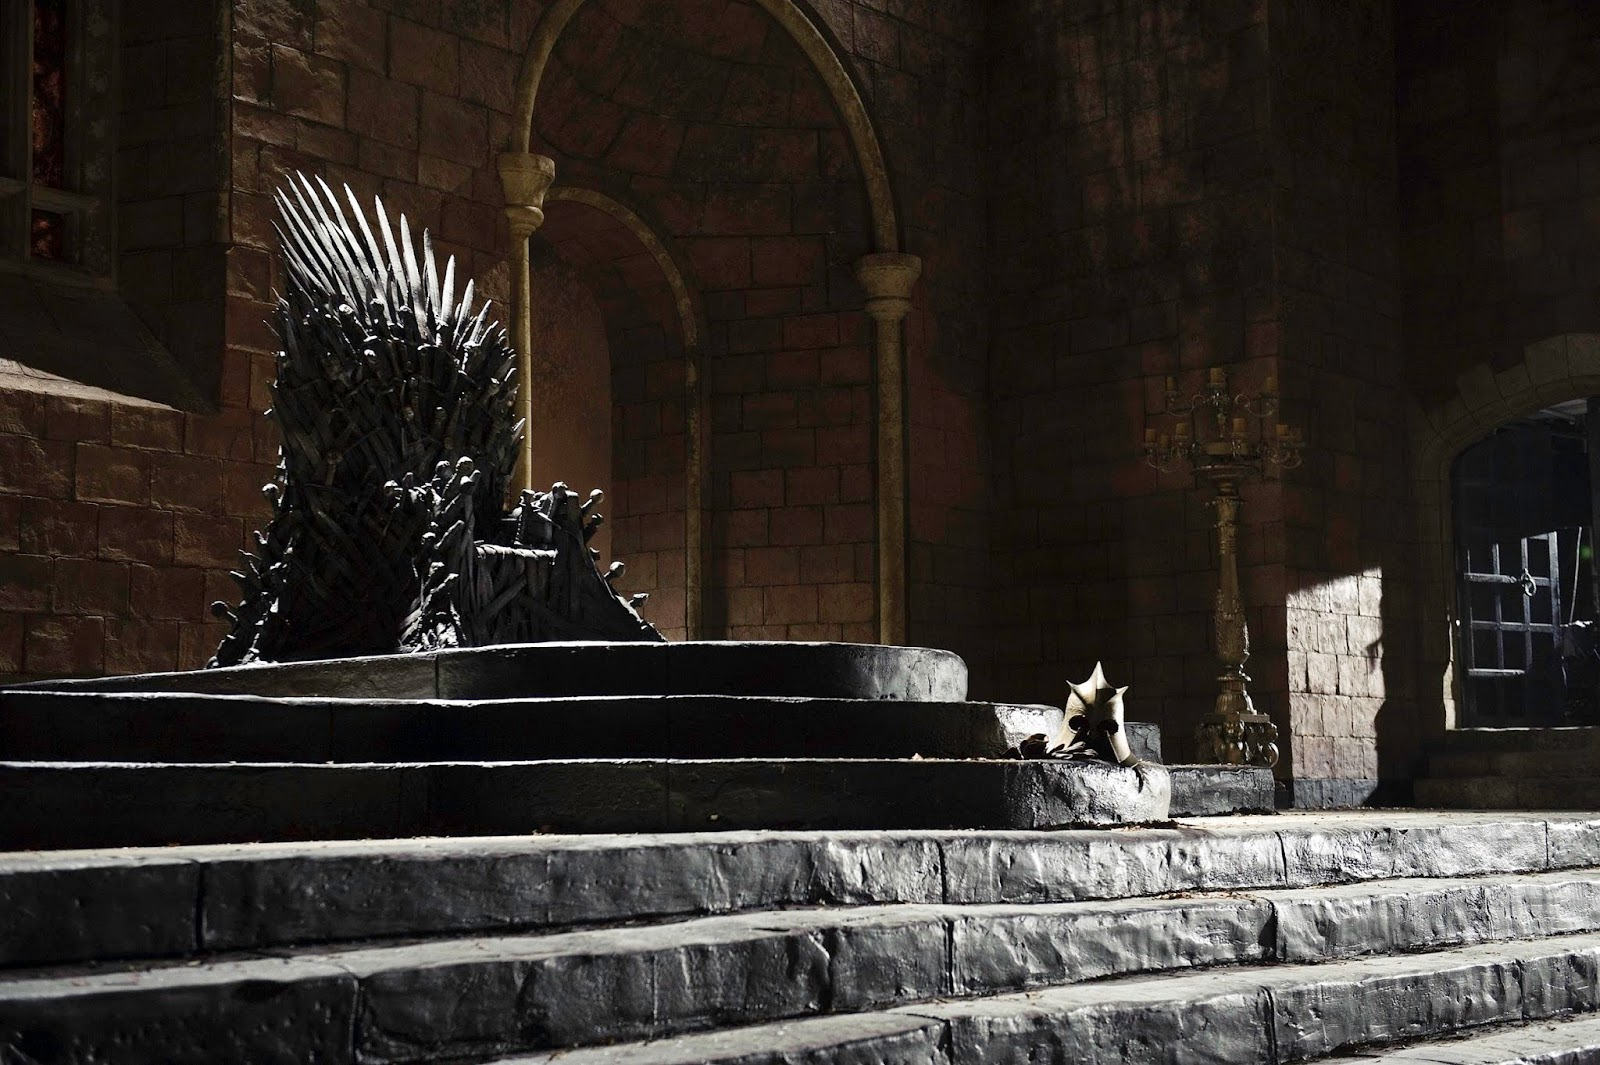 HBO Asia brings the iconic Iron Throne to Malaysia